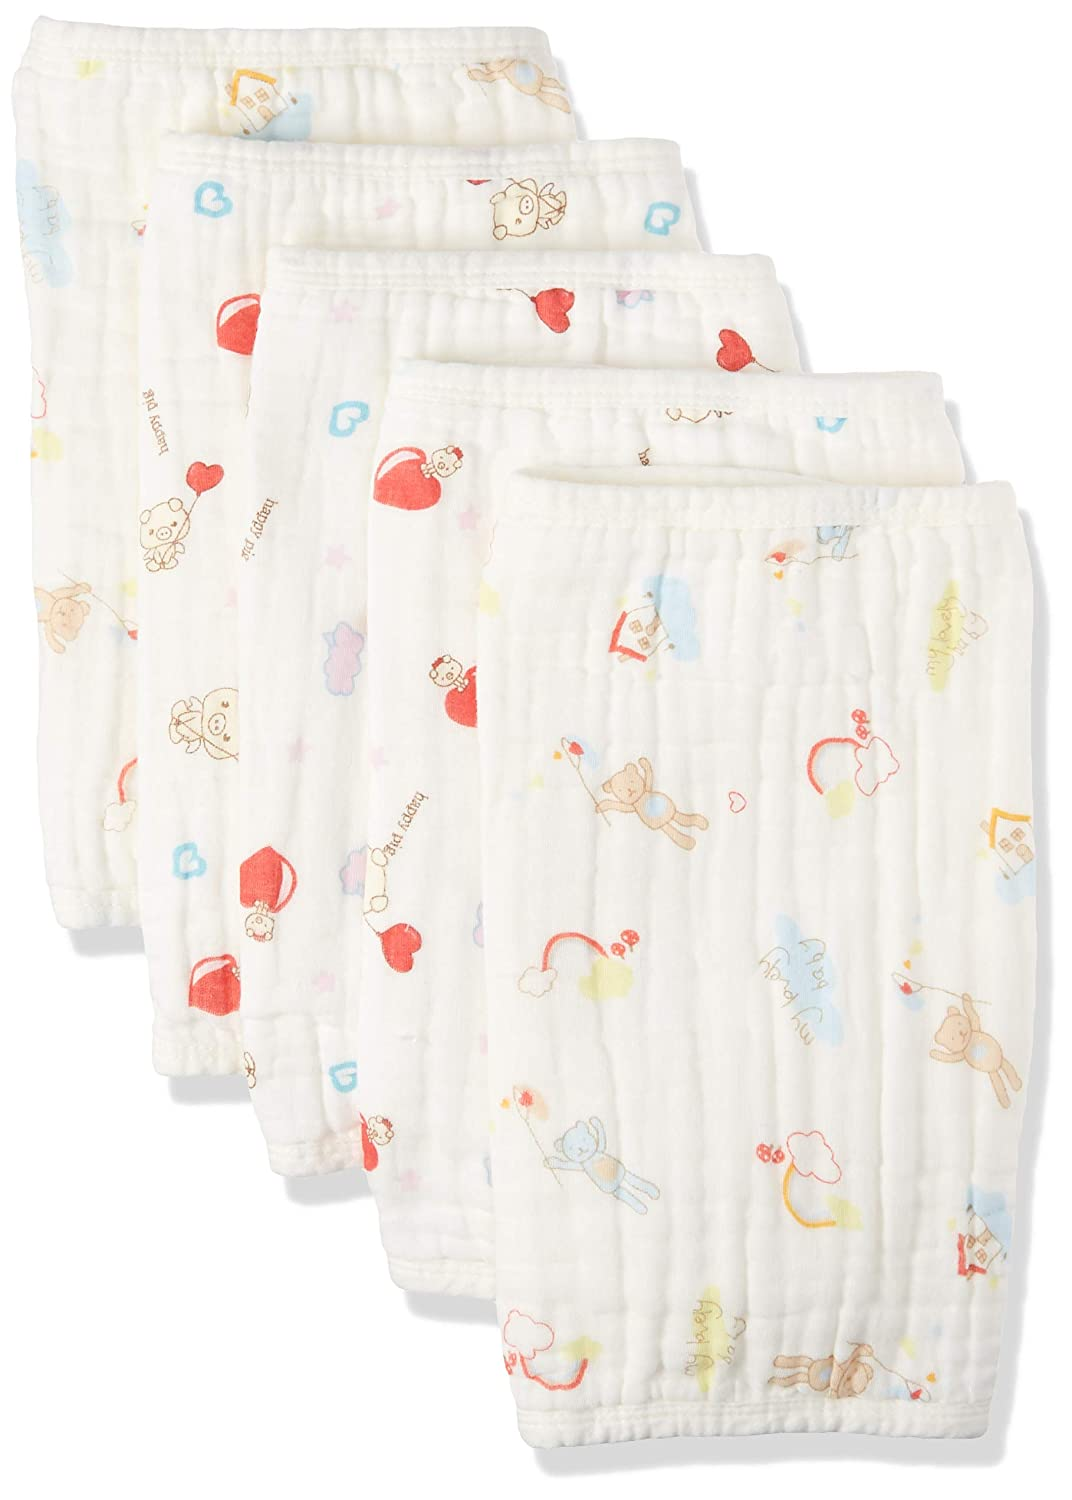 KOROTUS Muslin Baby Burp Cloths Washcloths Face Towels 4-Pack Extra Large 13.77X13.77 inches 12 Layers Super Absorbent Premium Soft Natural for Sensitive Skin Baby 100/% Organic Cotton